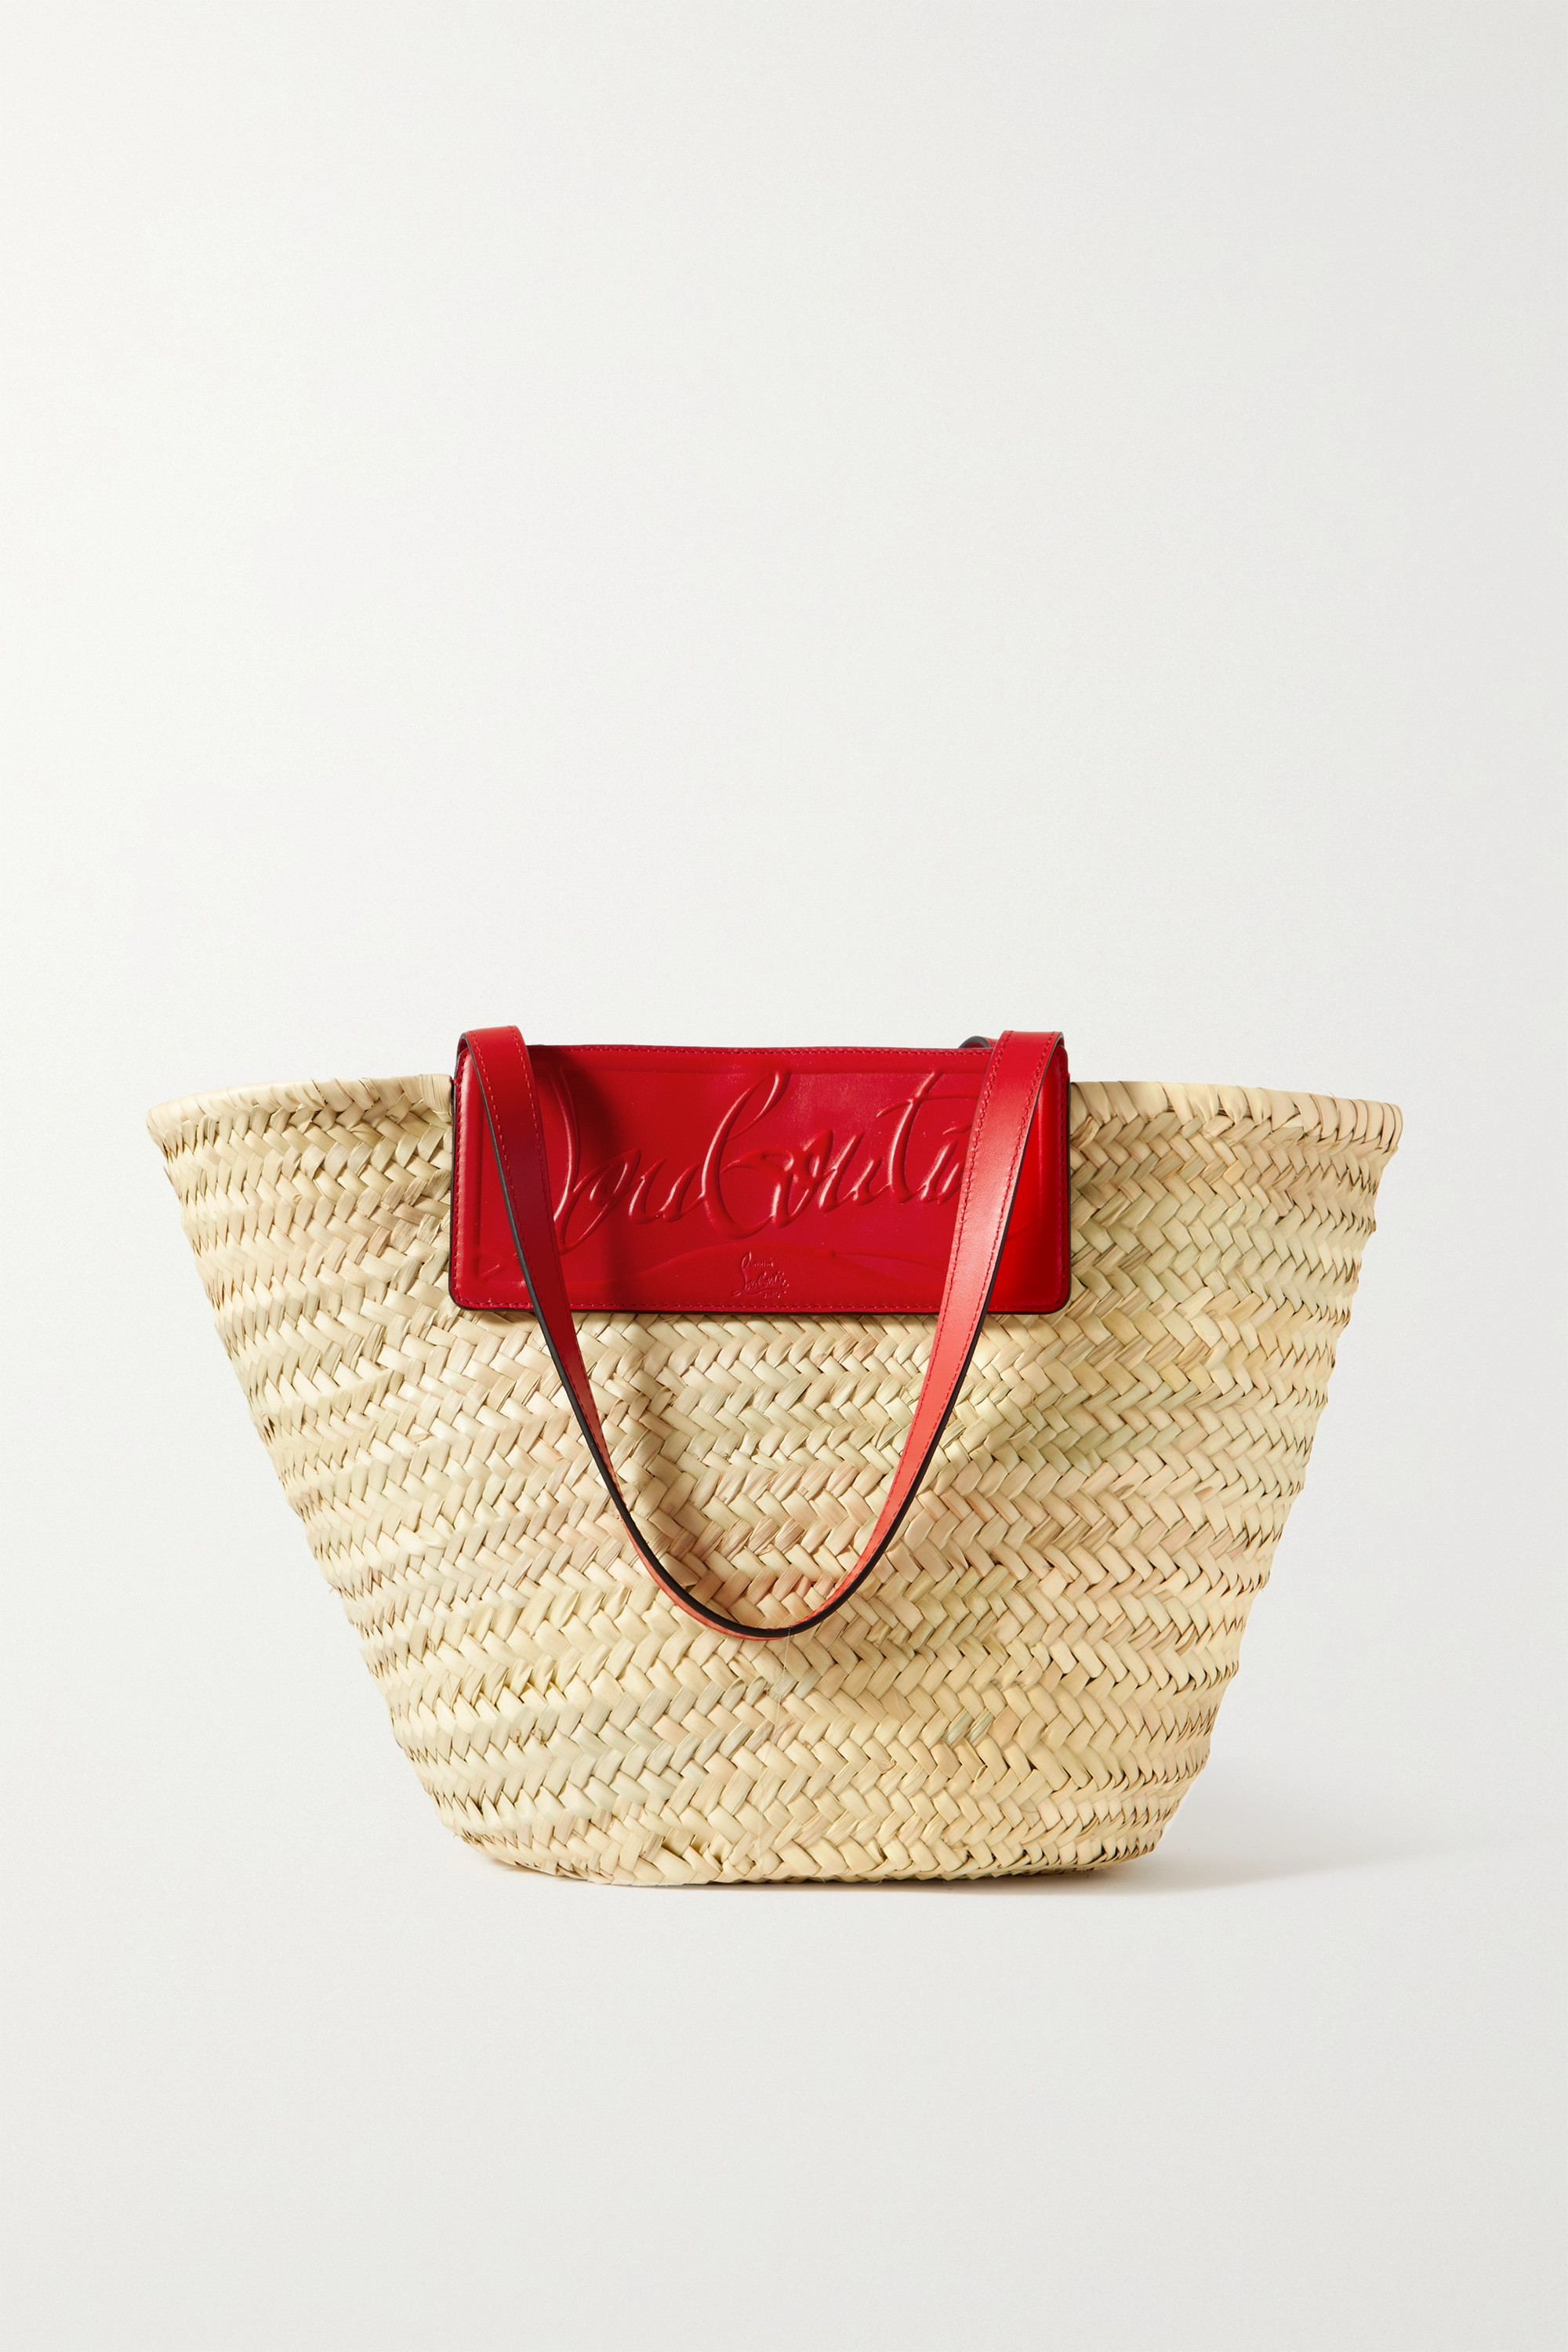 Christian Louboutin Loubishore woven straw and embossed leather tote